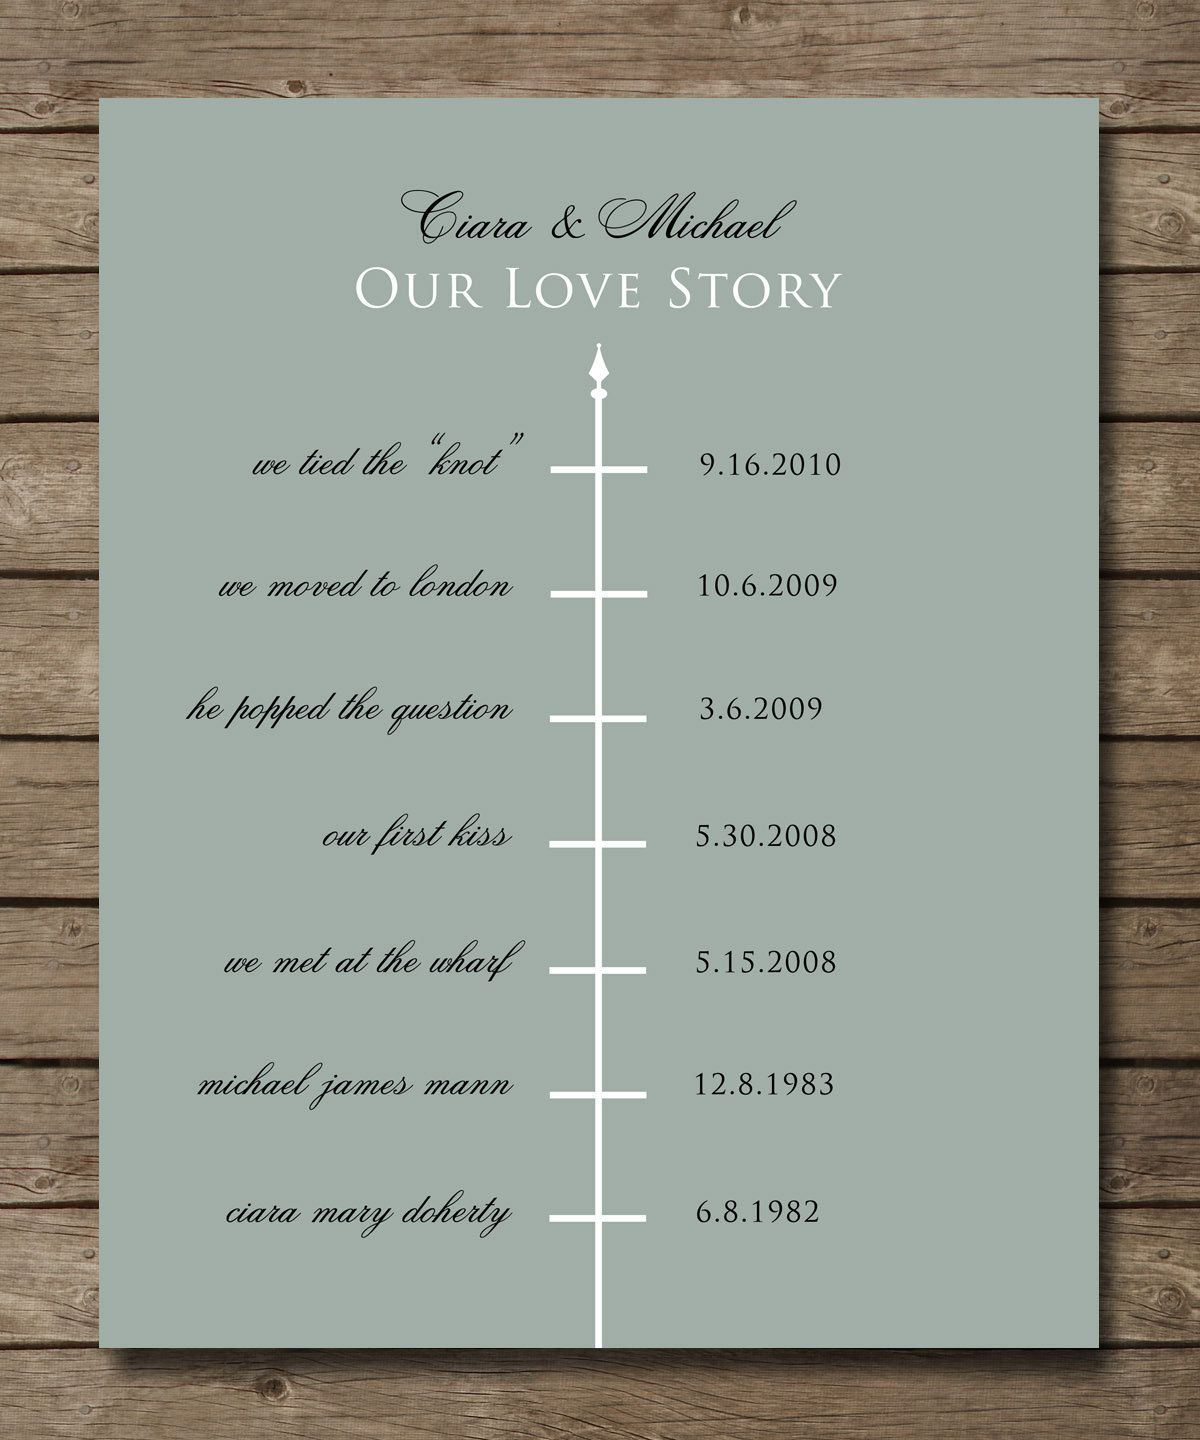 Wedding Anniversary Dates And Gifts: Personalized Timeline, Story Of Us, Engagement Gift, Paper